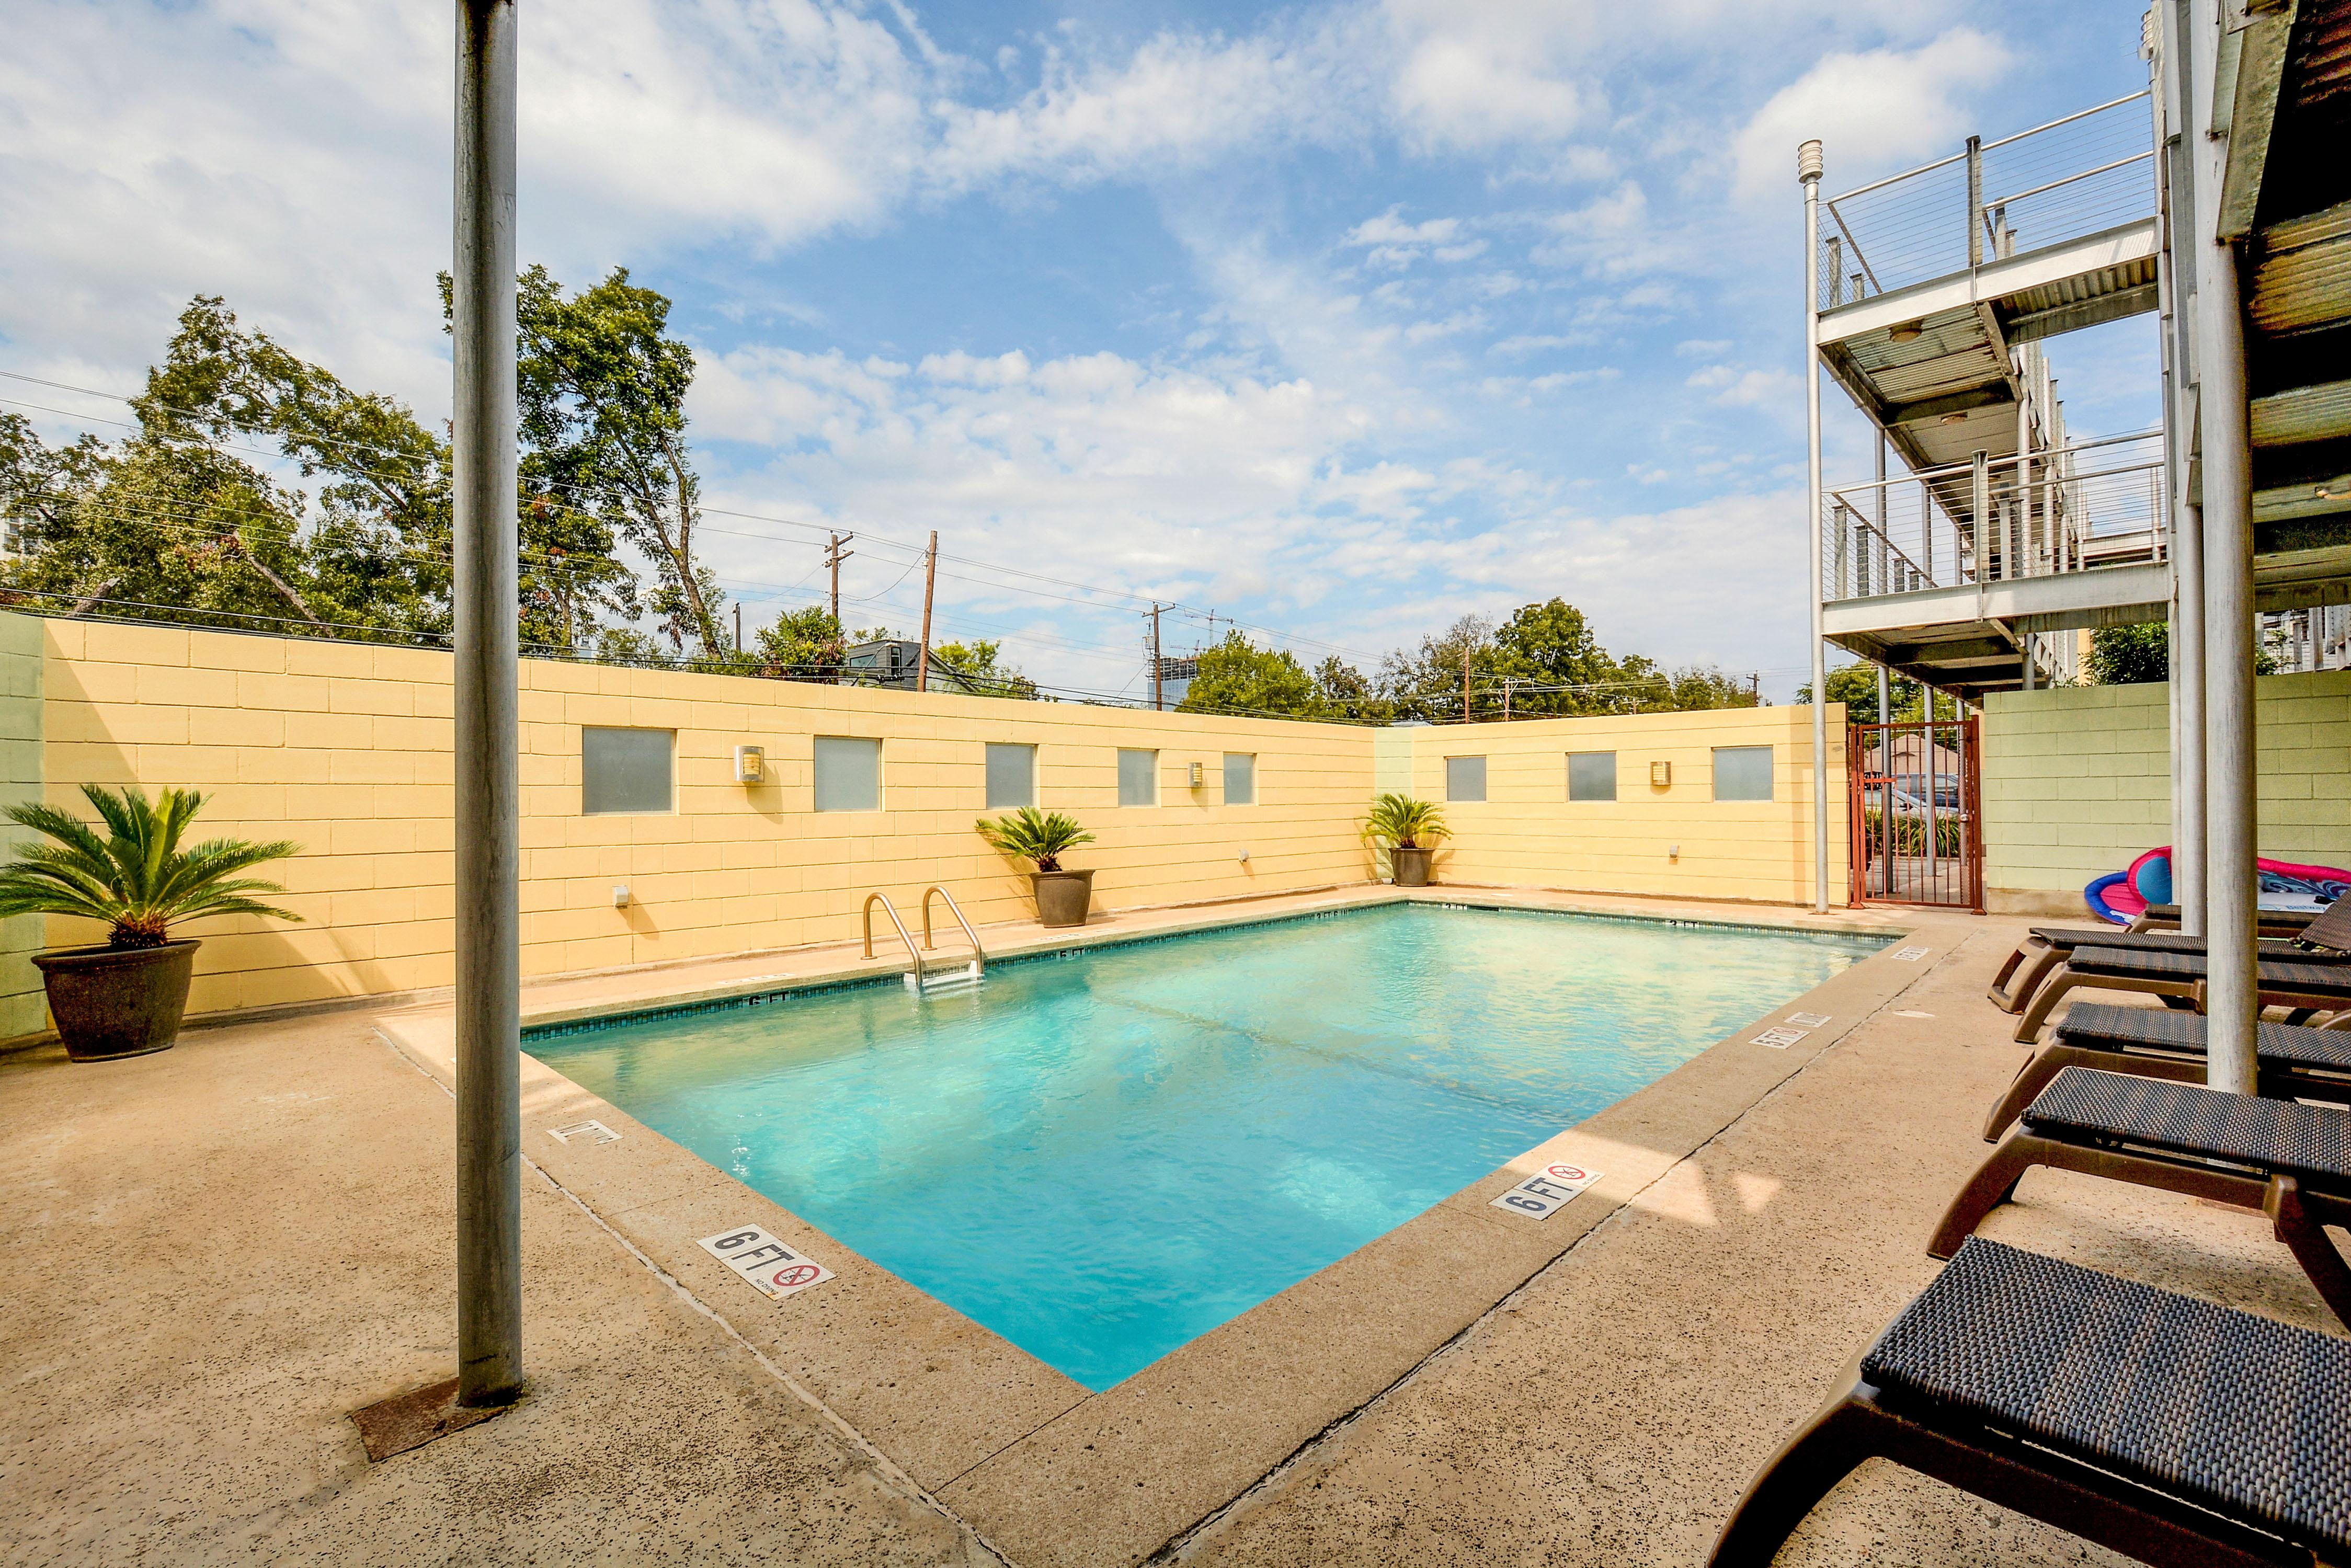 Take a dip in the community pool just outside.